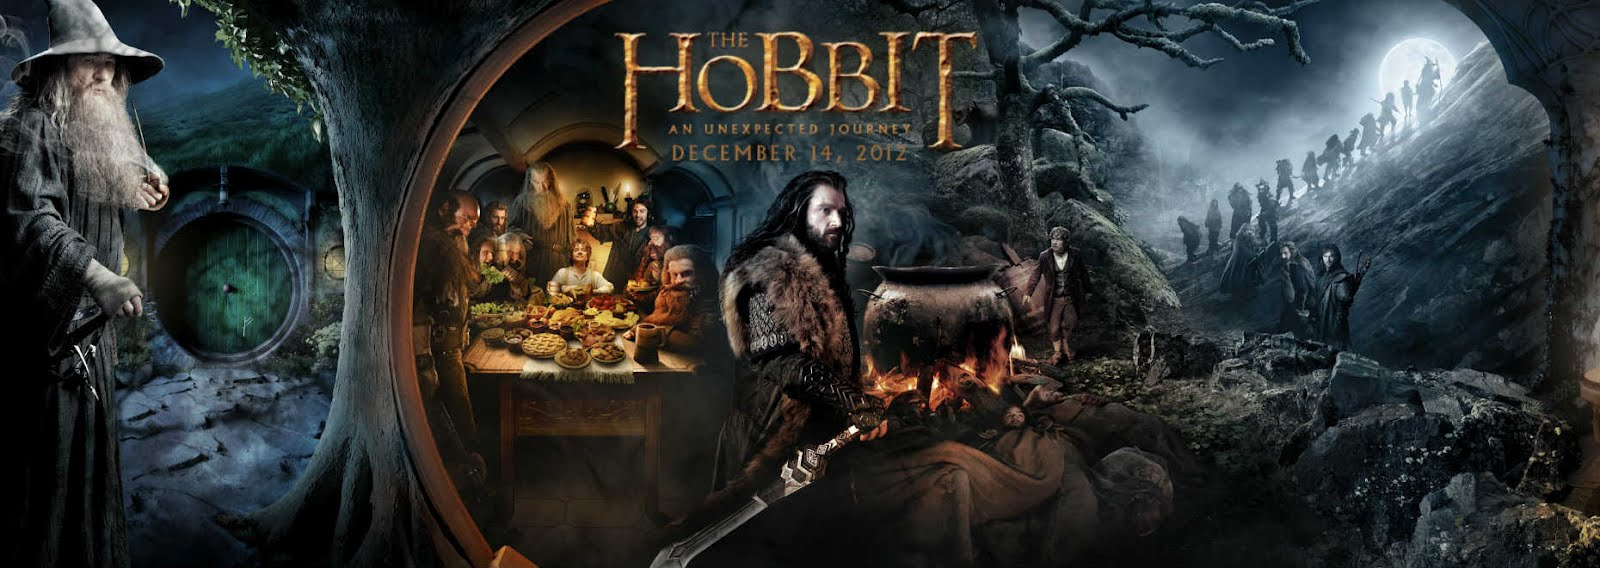 Image Result For Hobbit Movie Trailer